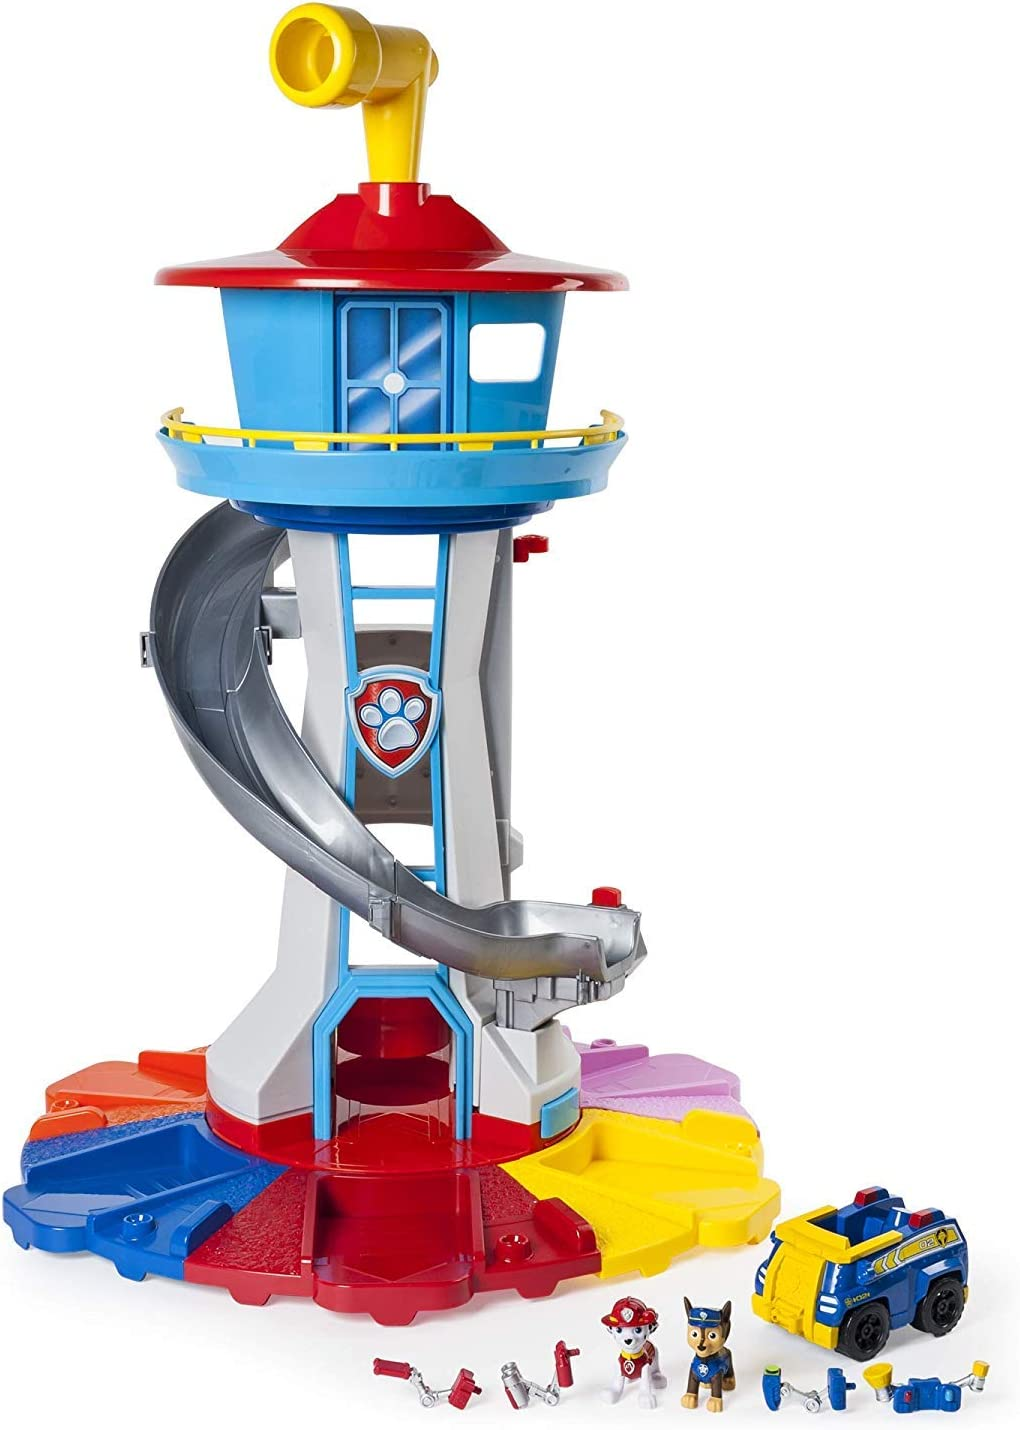 Top 12 Best Paw Patrol Toys (2020 Reviews & Buying Guide) 10